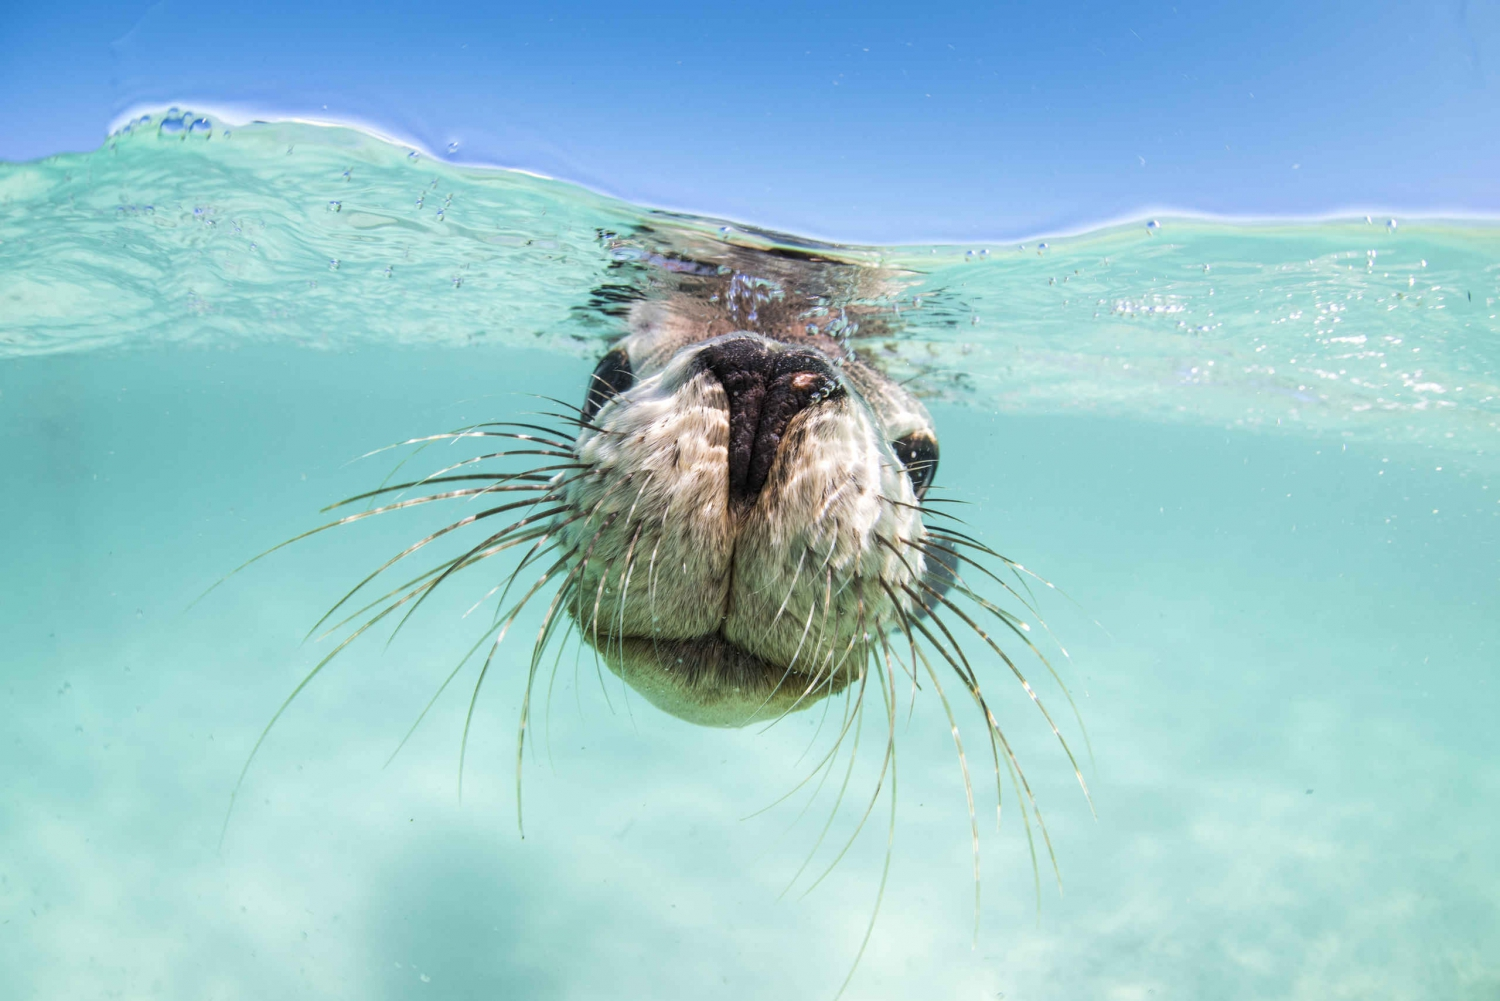 Jurien Bay Sea Lions Boat Trip with Optional Snorkeling